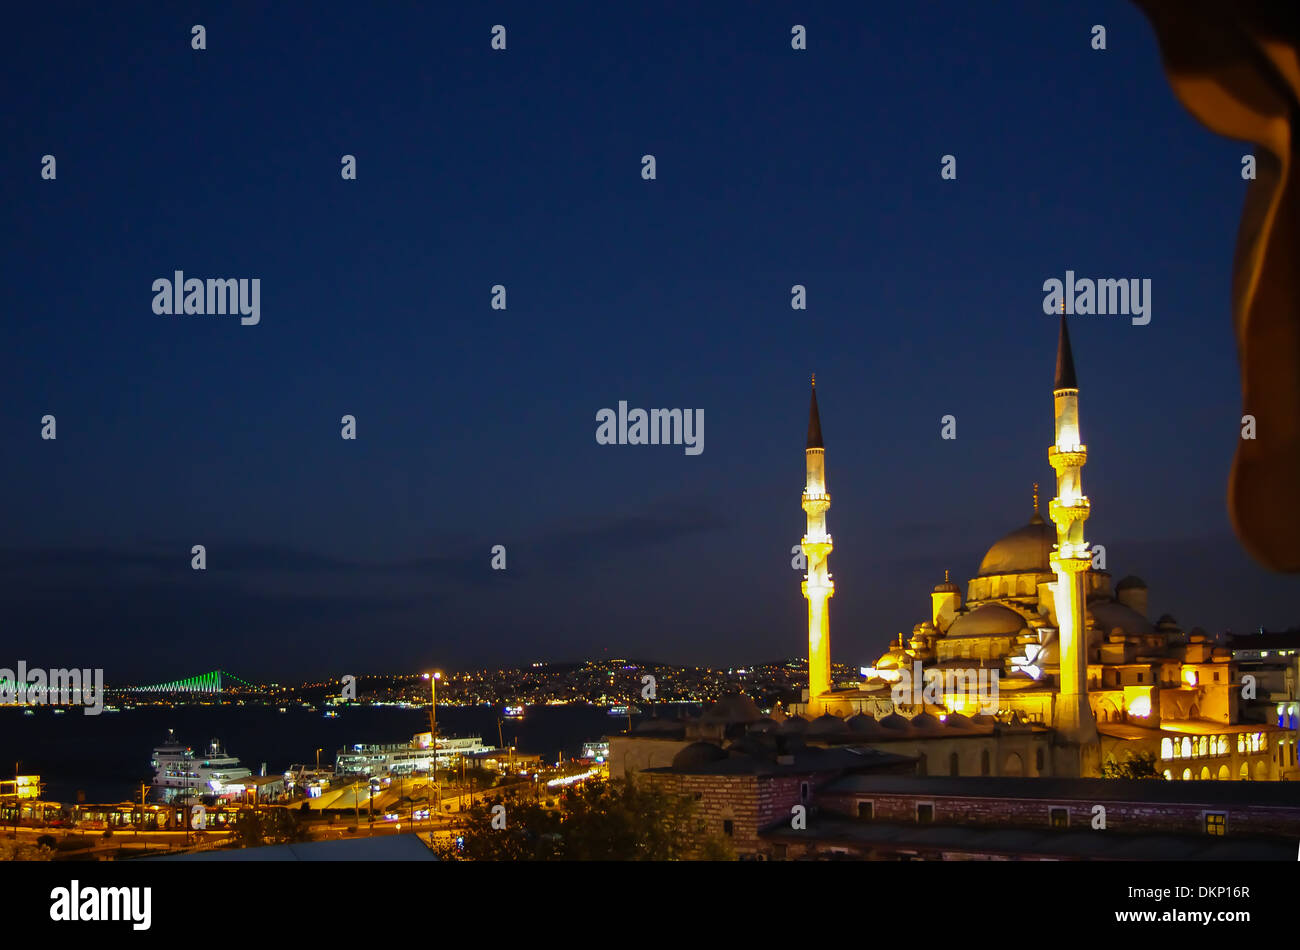 The Golden Horn glitters in the night sky. Stock Photo